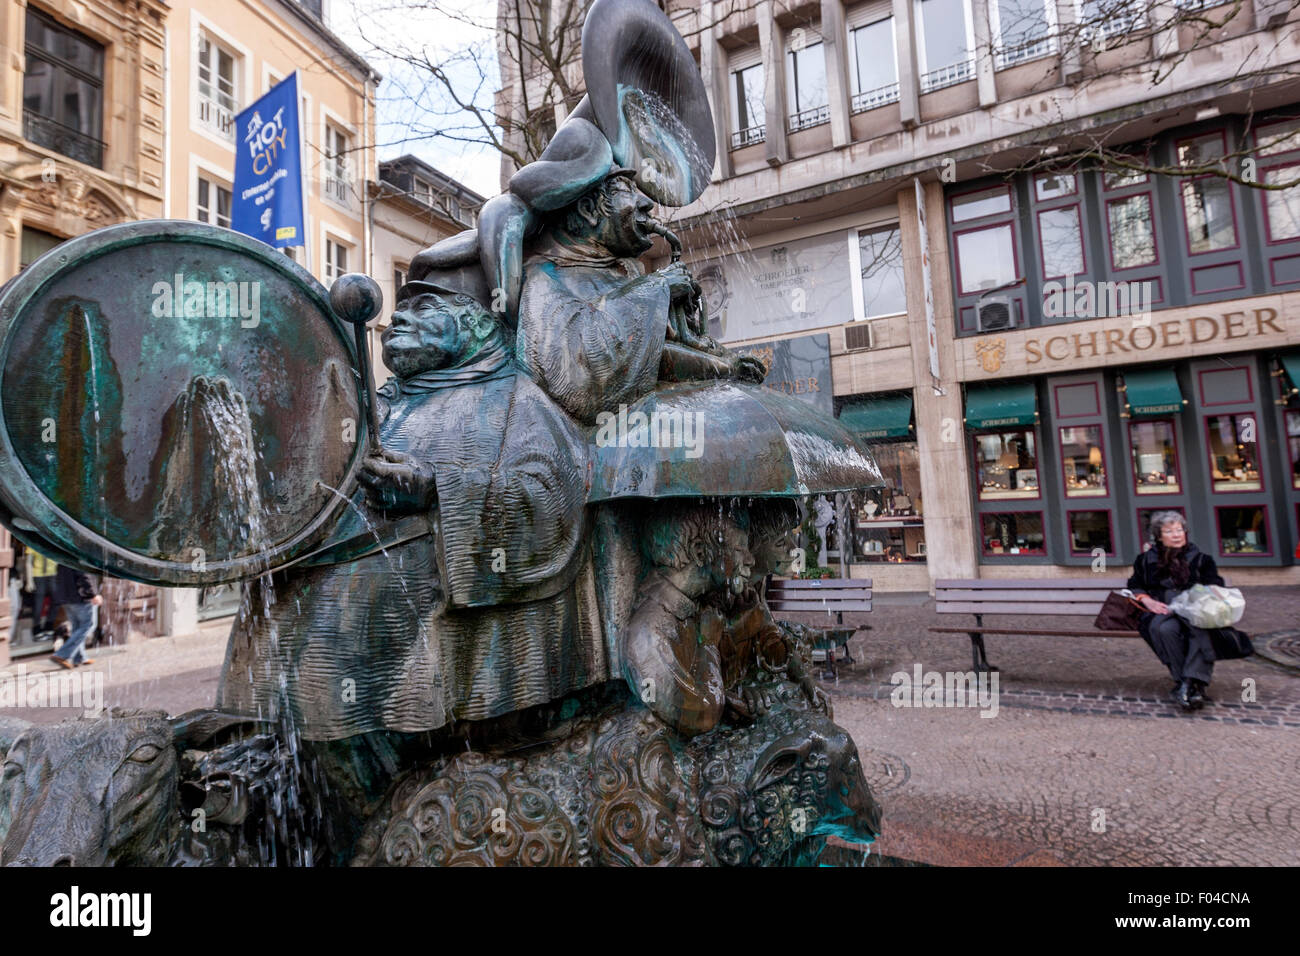 Musician's band with sheep fountain, Hmmelsmarsch sculpture, sculptor Wil Lofy, 1982,  in Place du Puits-Rouge, - Stock Image